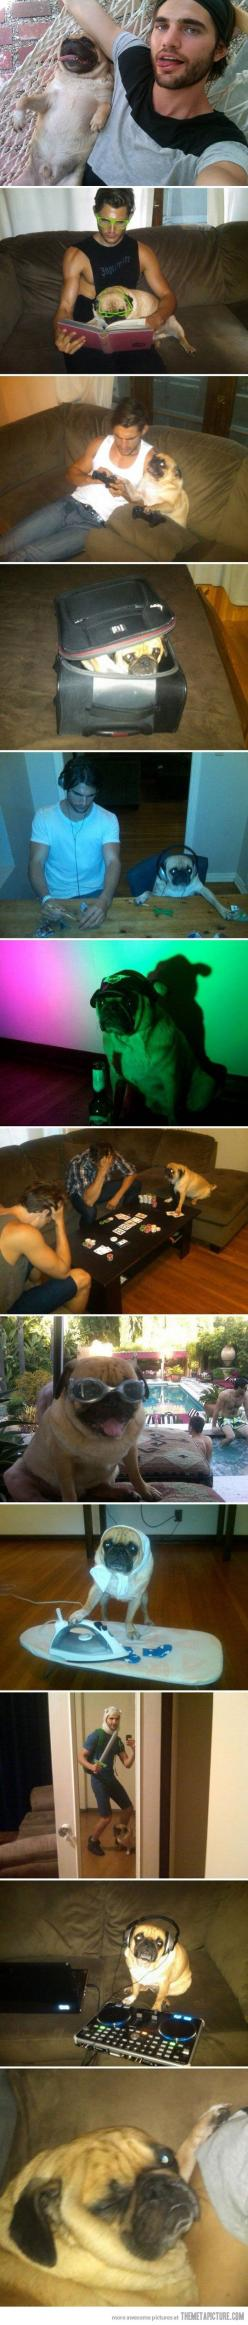 I love the little tiny socks in the ironing photo! The Texas hold em is hysterical!: Best Friends, Adventure Time, Guy, Pug Life, Pugs, Photogenic Pug, Dog, Animal